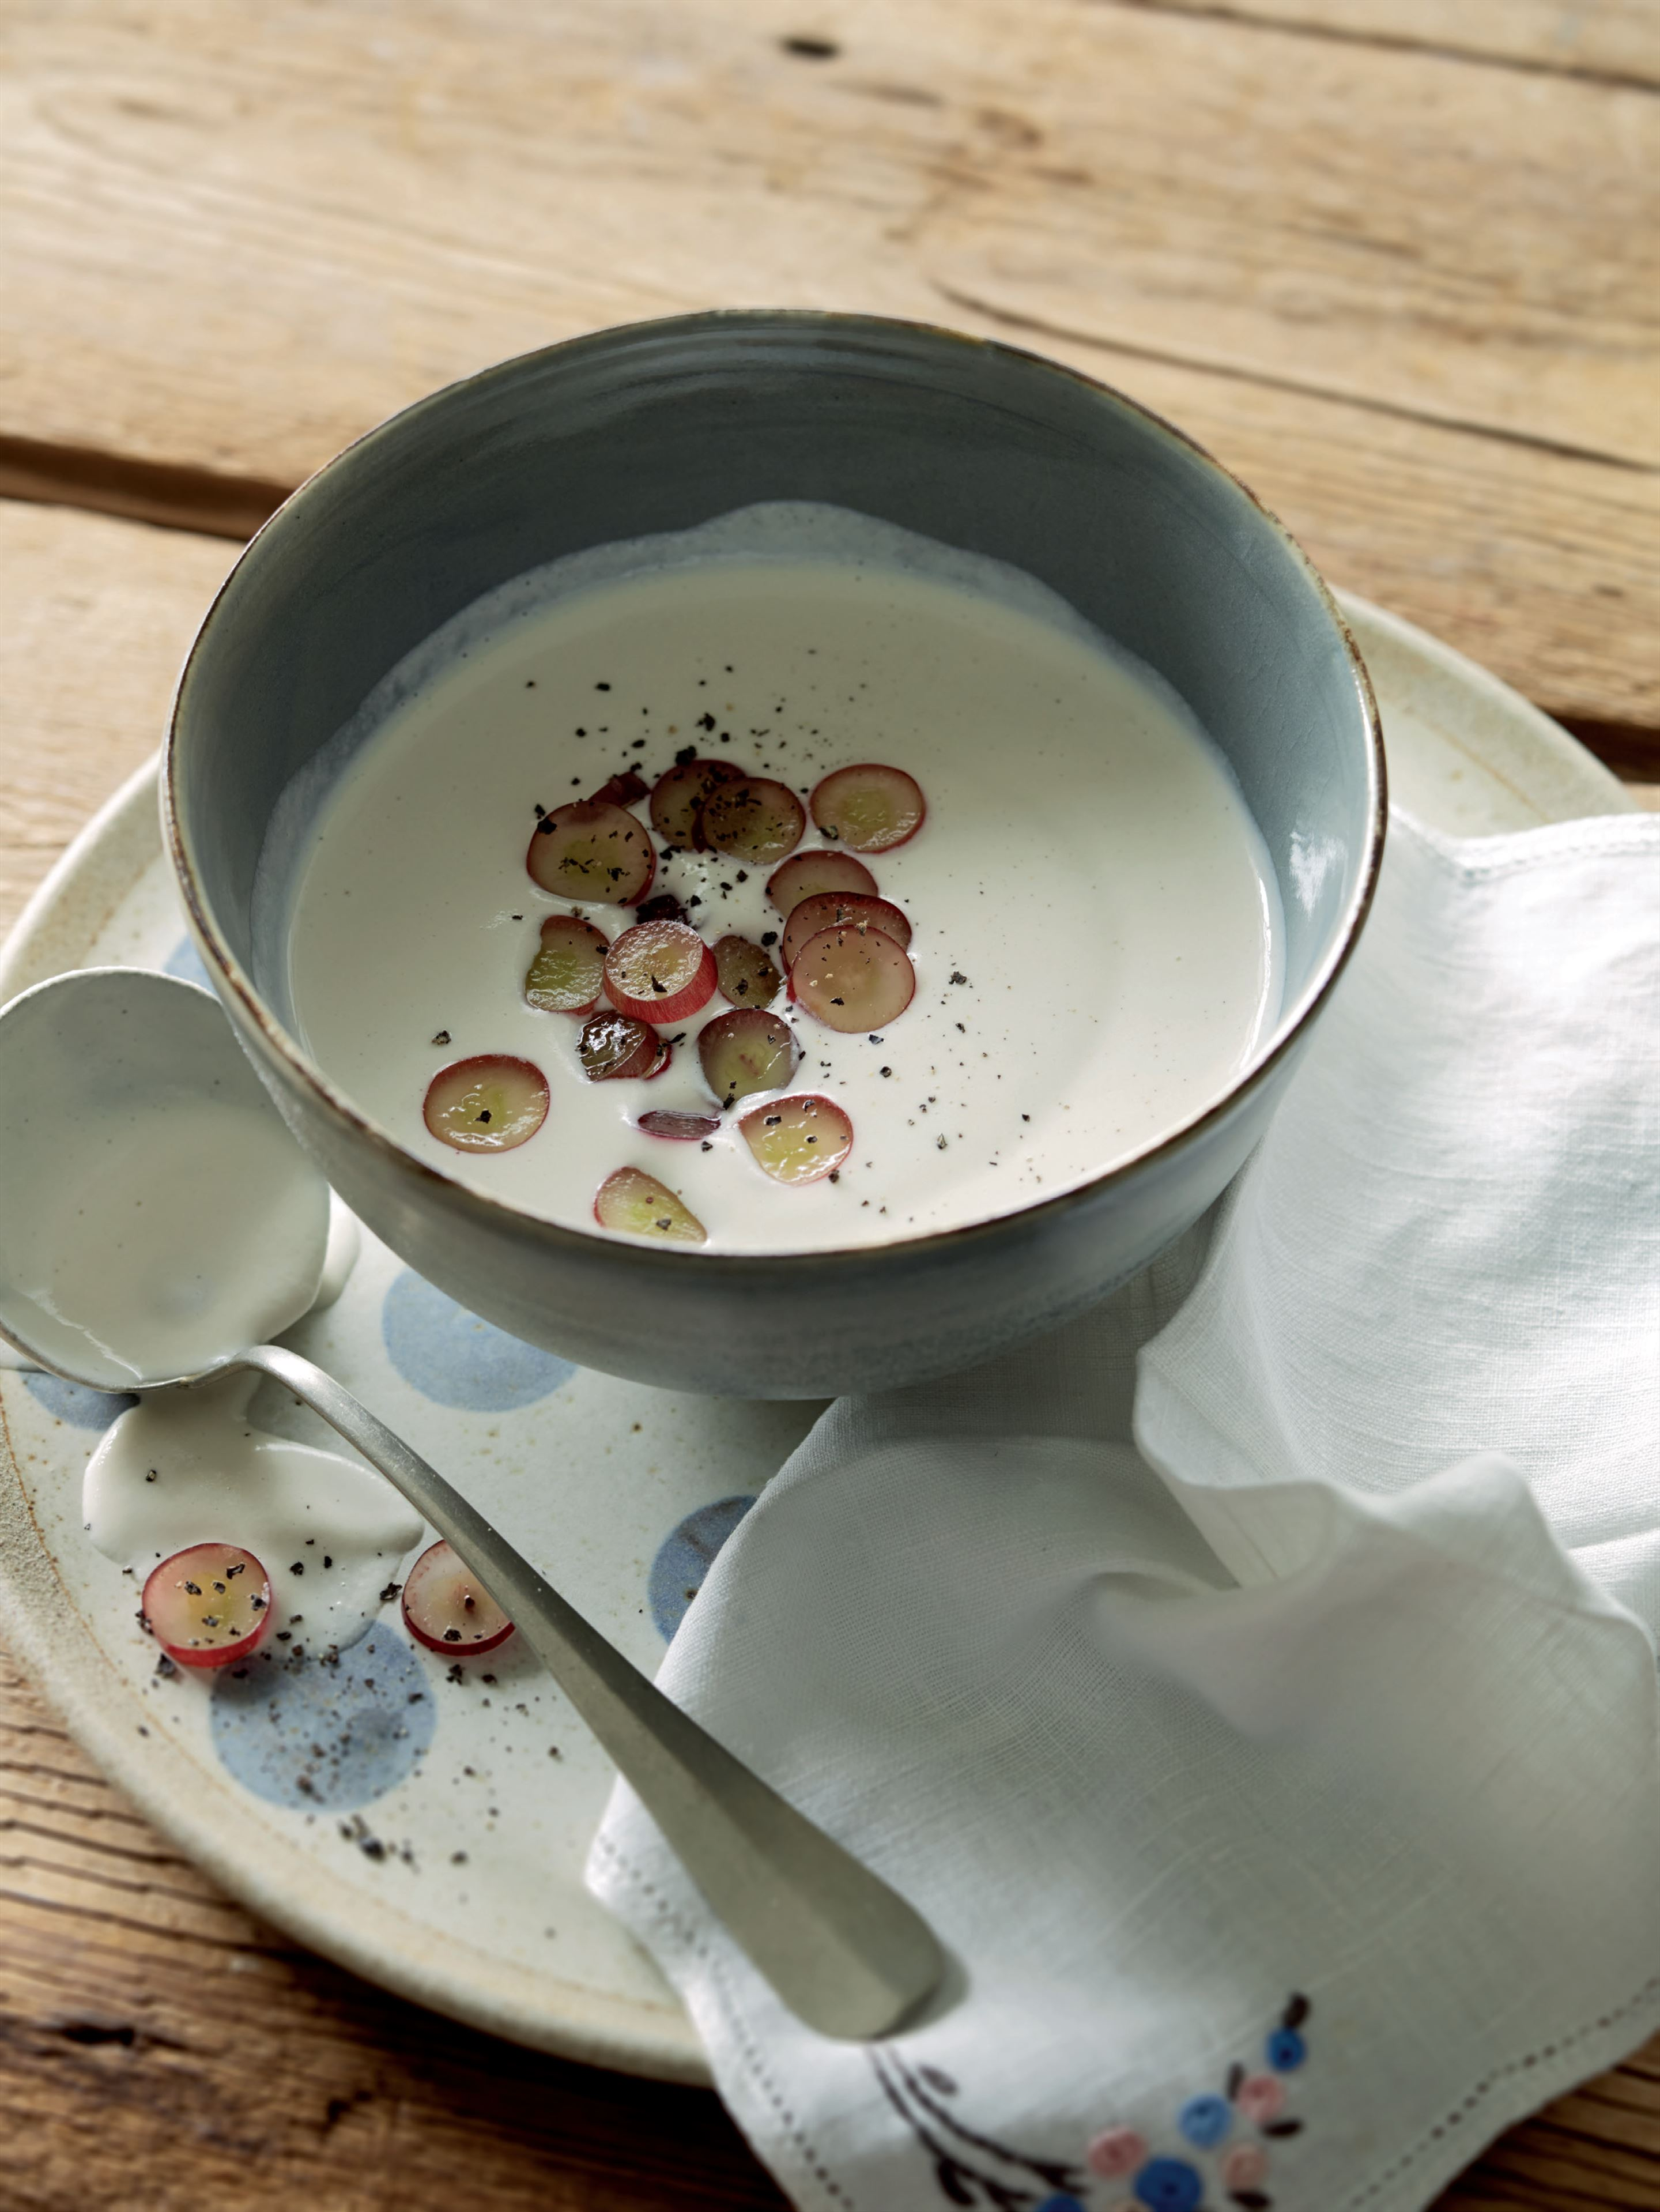 Ajo blanco with red grapes